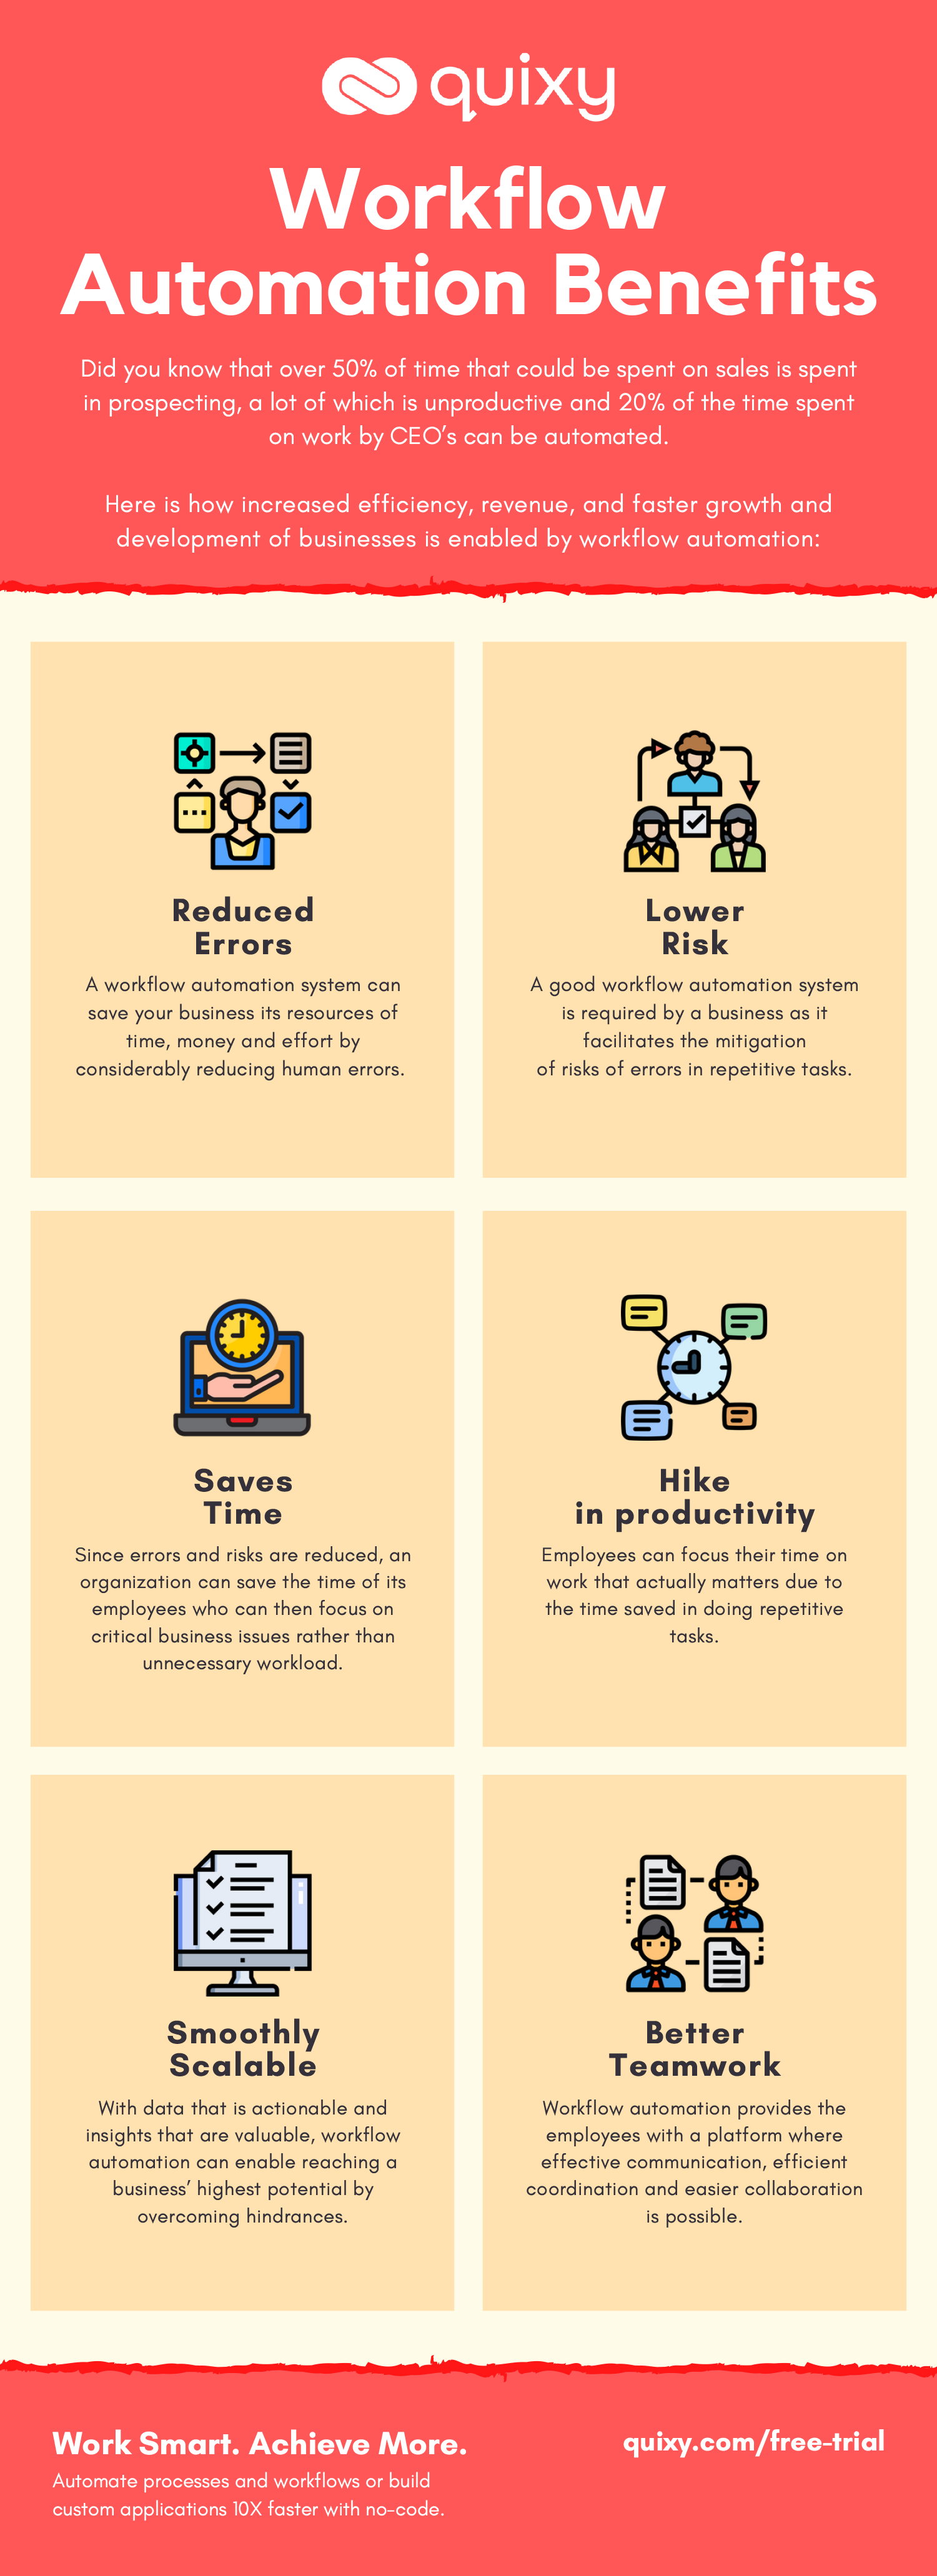 Workflow Automation Benefits